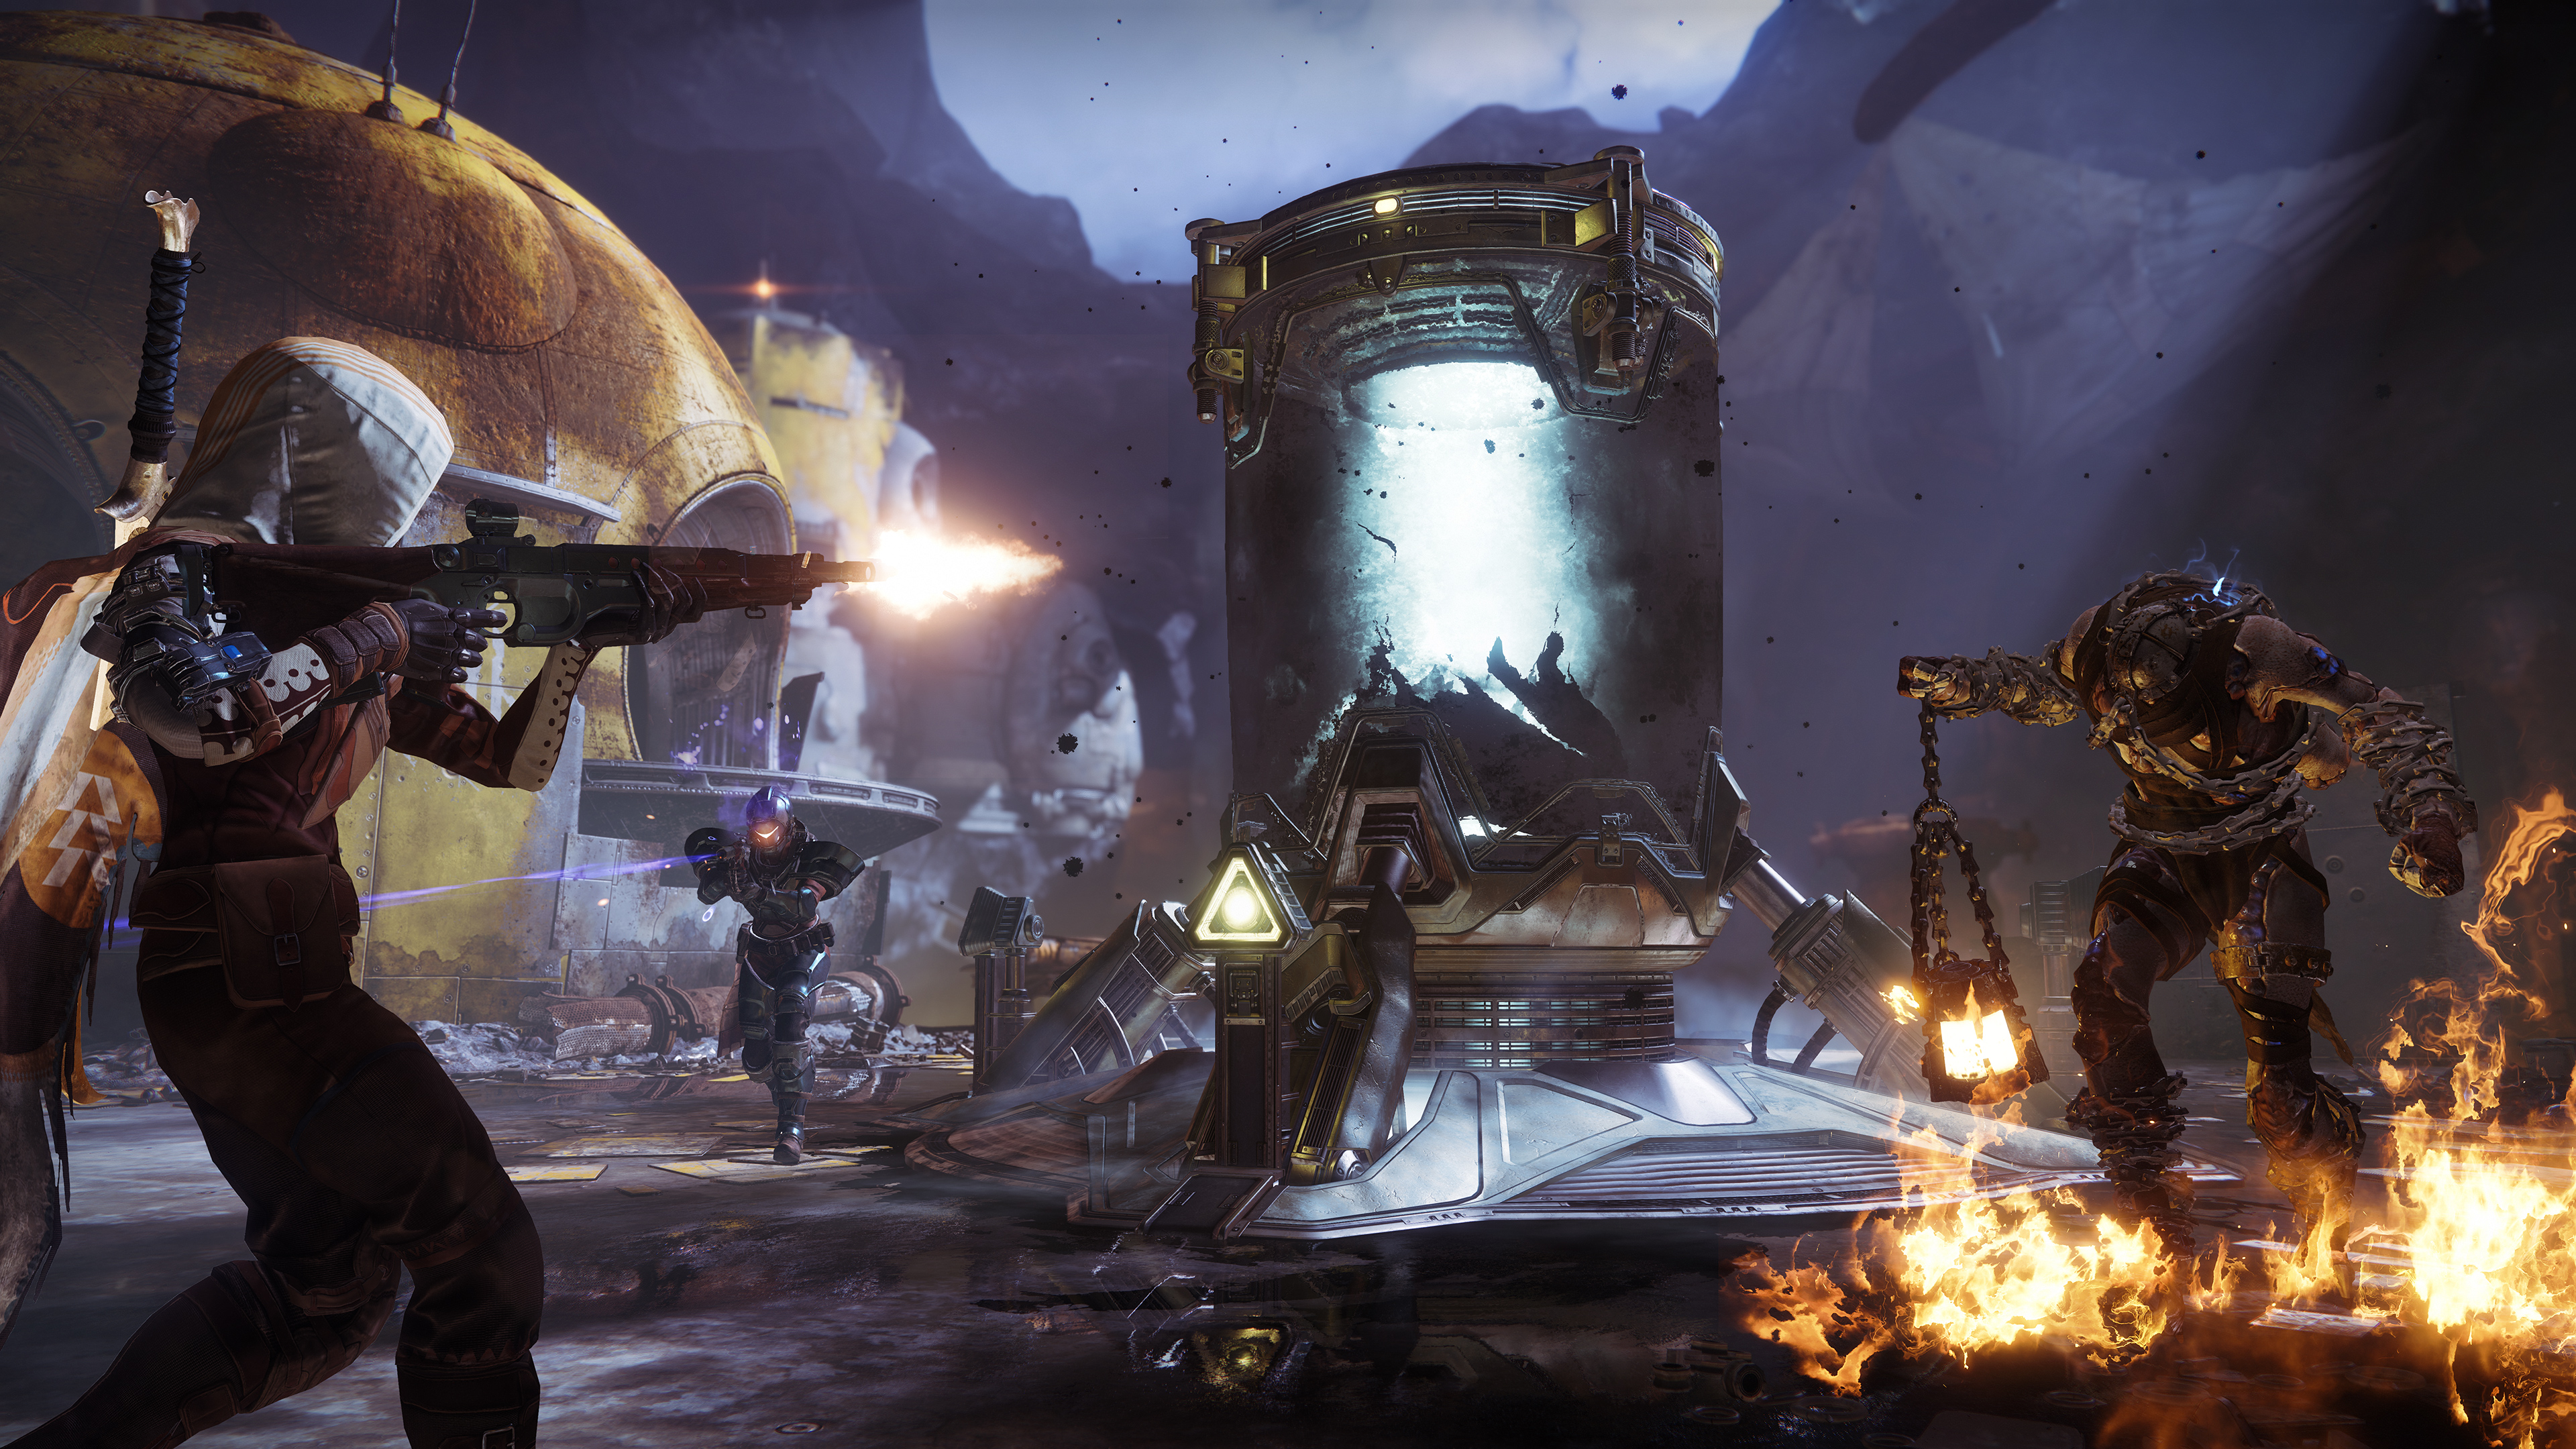 Destiny 2 Gambit free trial details: start time, how long it